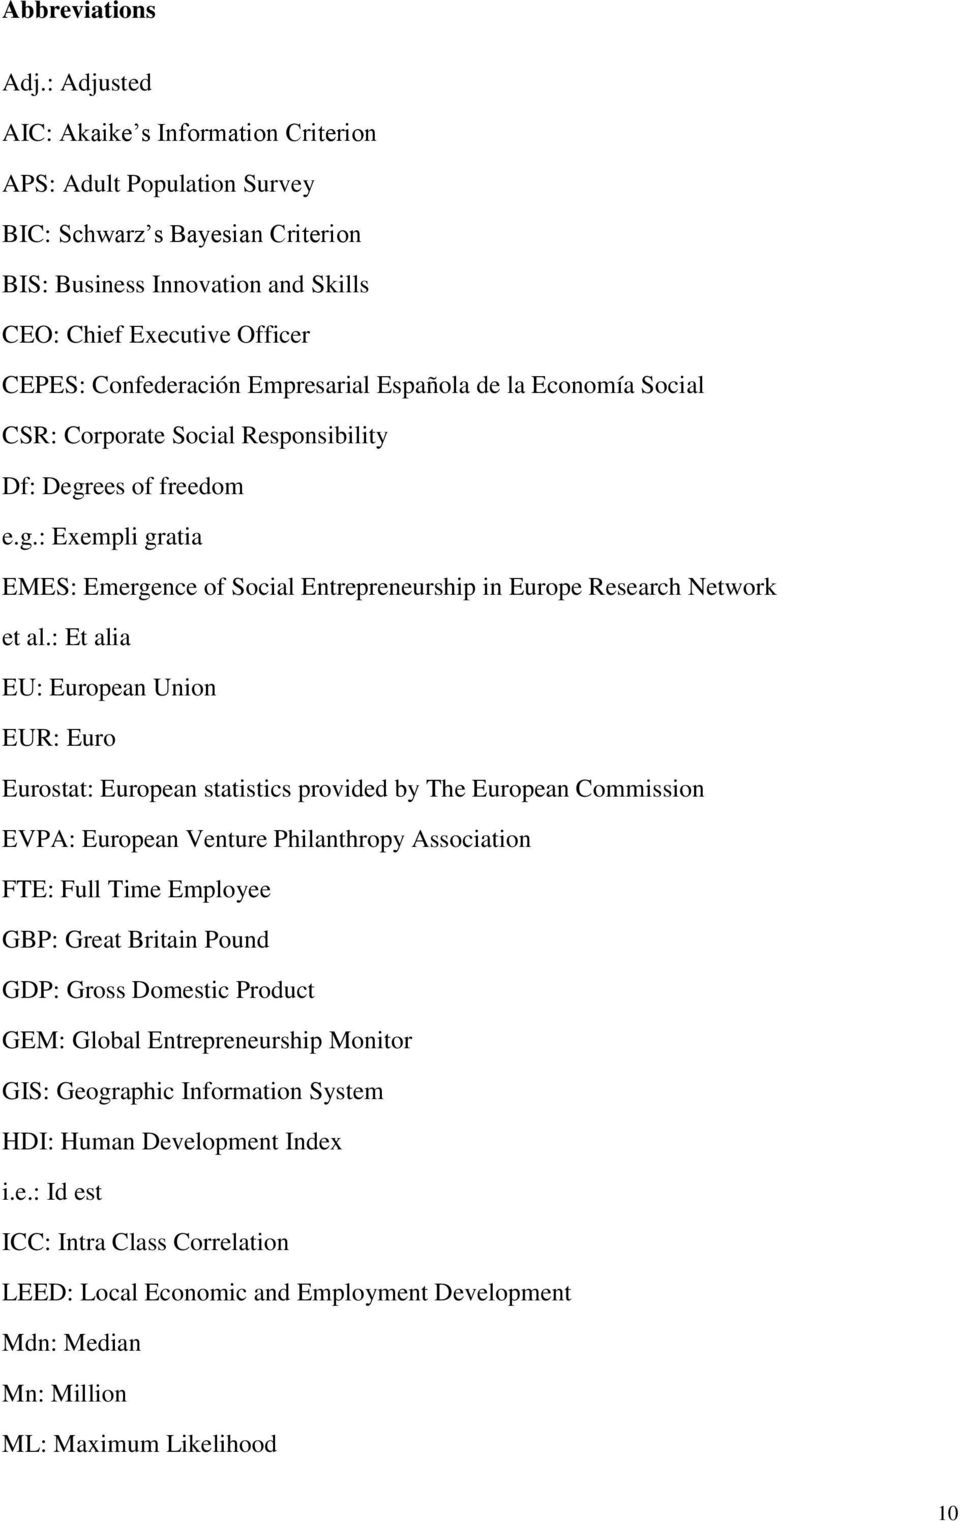 Empresarial Española de la Economía Social CSR: Corporate Social Responsibility Df: Degrees of freedom e.g.: Exempli gratia EMES: Emergence of Social Entrepreneurship in Europe Research Network et al.